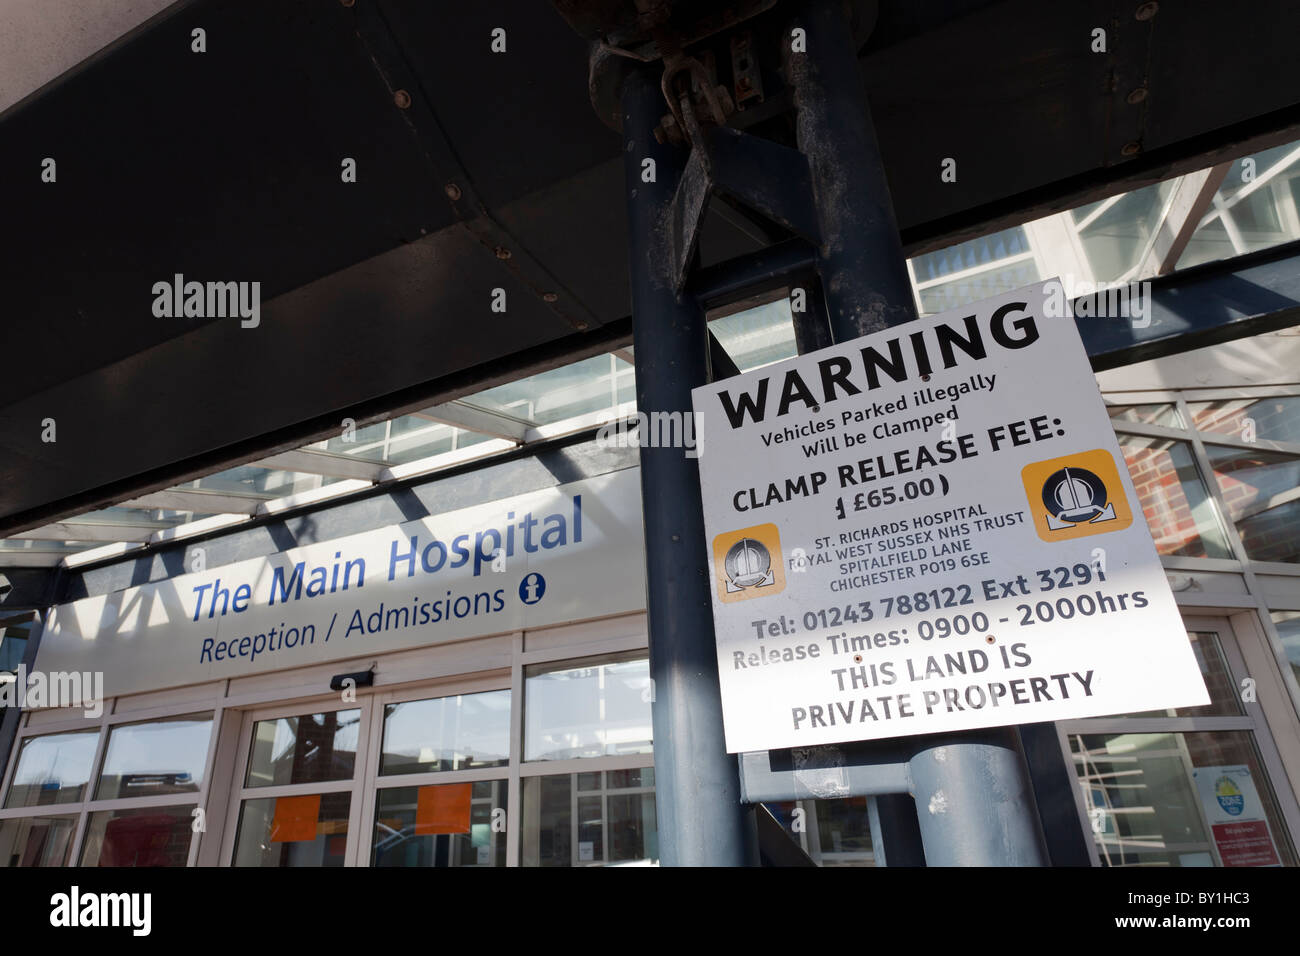 Warning sign illegal parking clamping release fee outside Hospital Reception - Stock Image